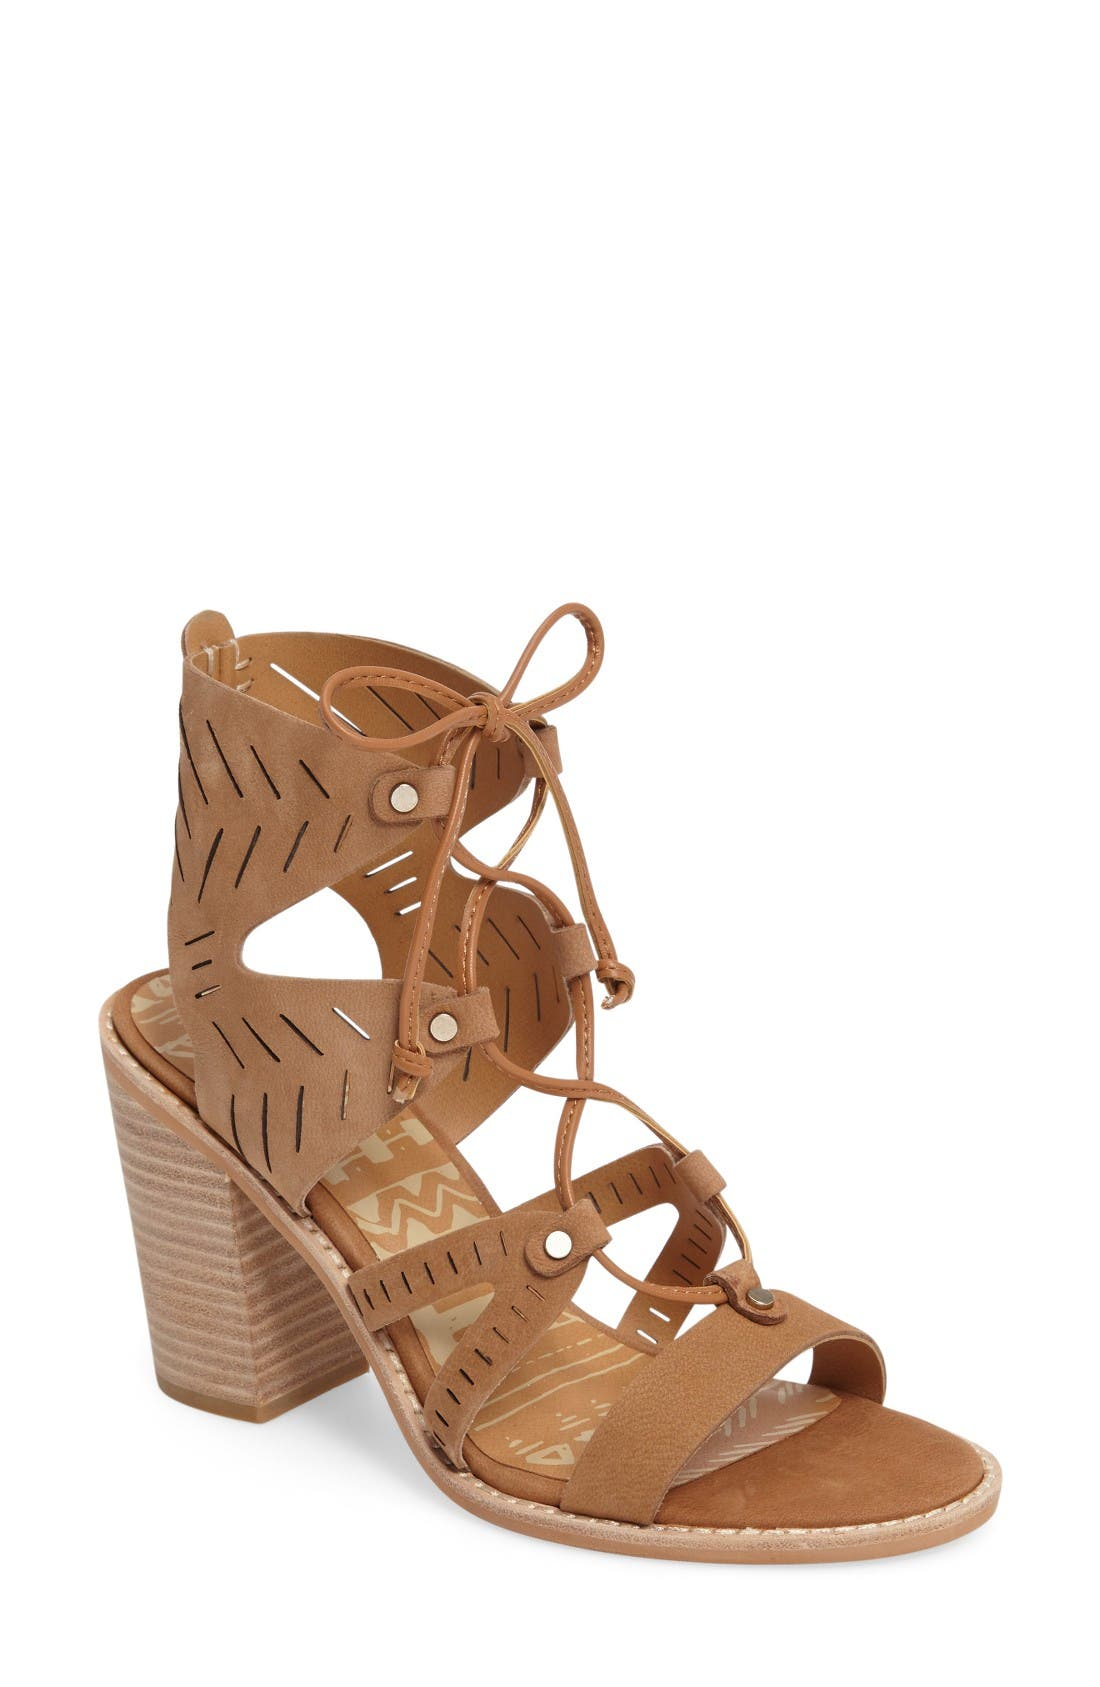 Alternate Image 1 Selected - Dolce Vita Luci Ghillie Lace Sandal (Women)